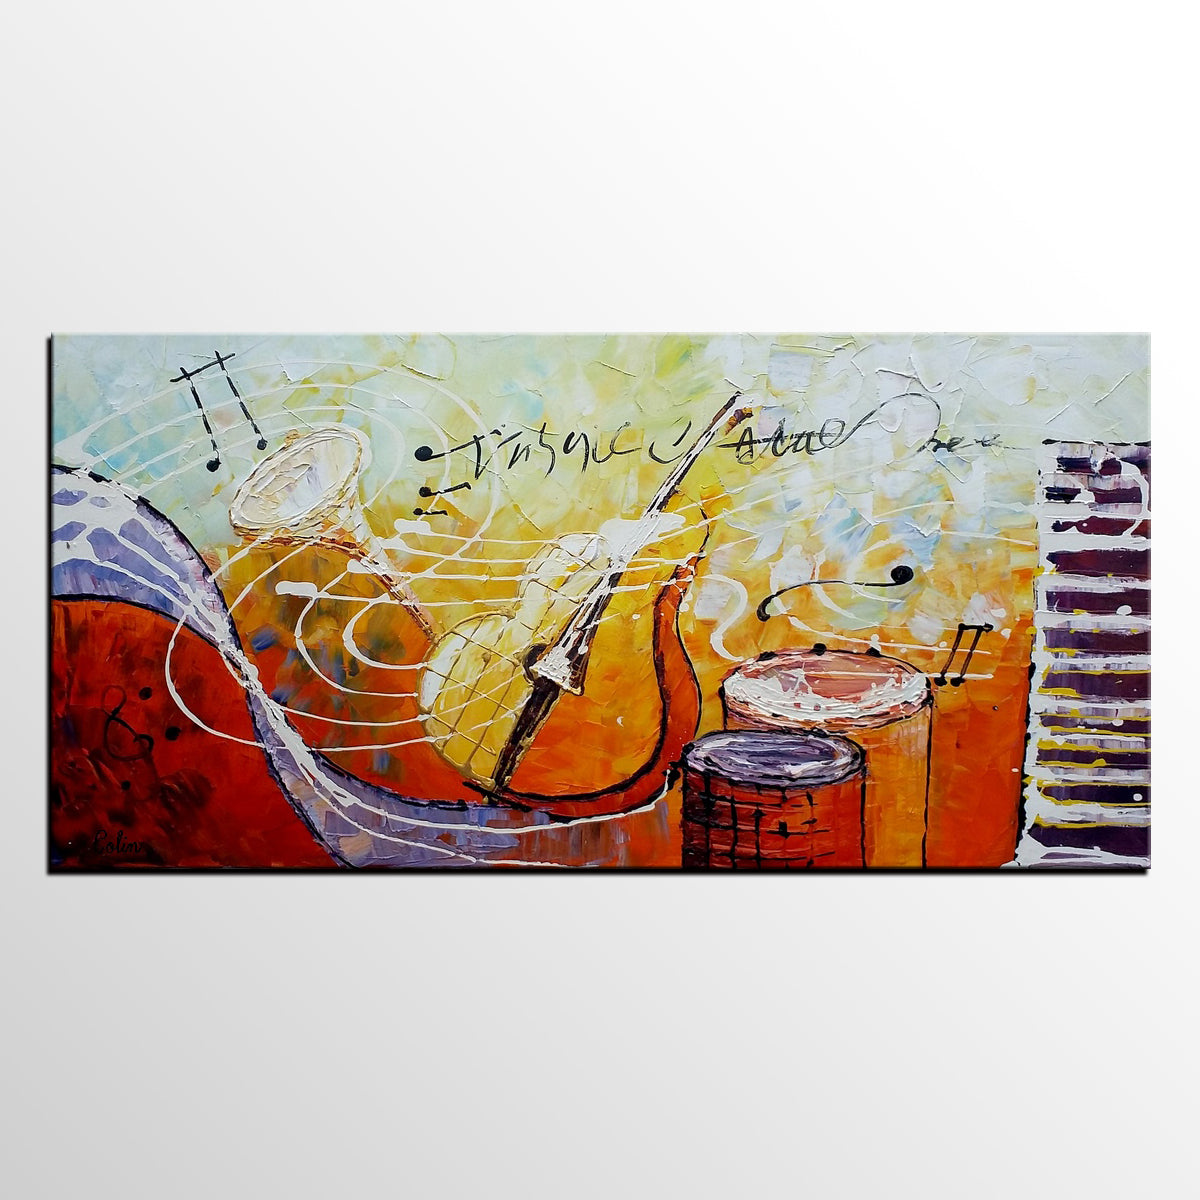 Violin Painting, Abstract Painting, Canvas Painting, Bedroom Wall Art, Art Painting - artworkcanvas